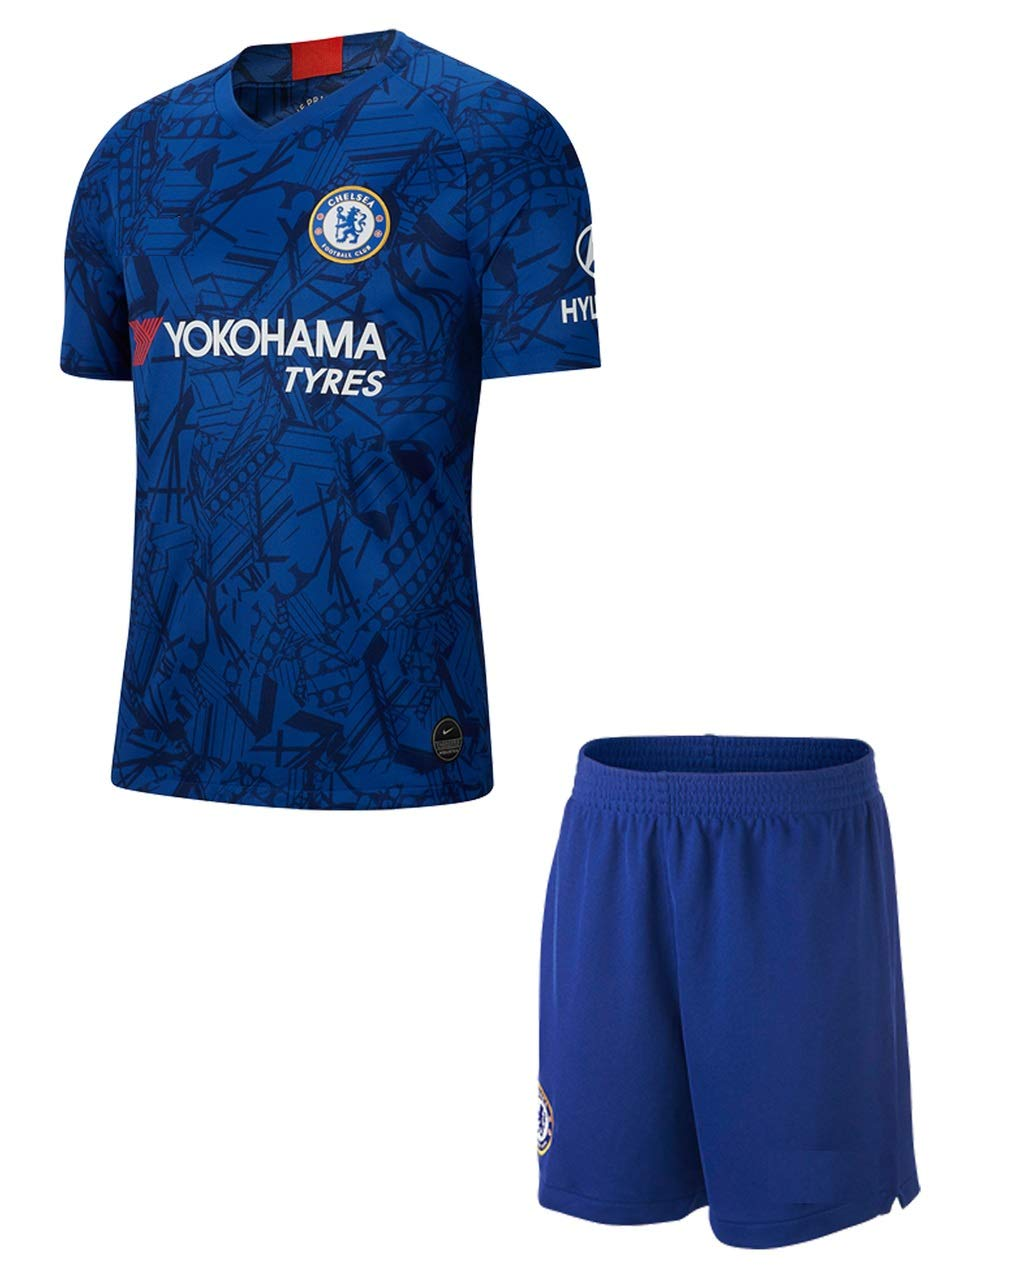 Golden Fashion Chelsea Home Kit 2019 20 Football Jersey With Short Amazon In Sports Fitness Outdoors